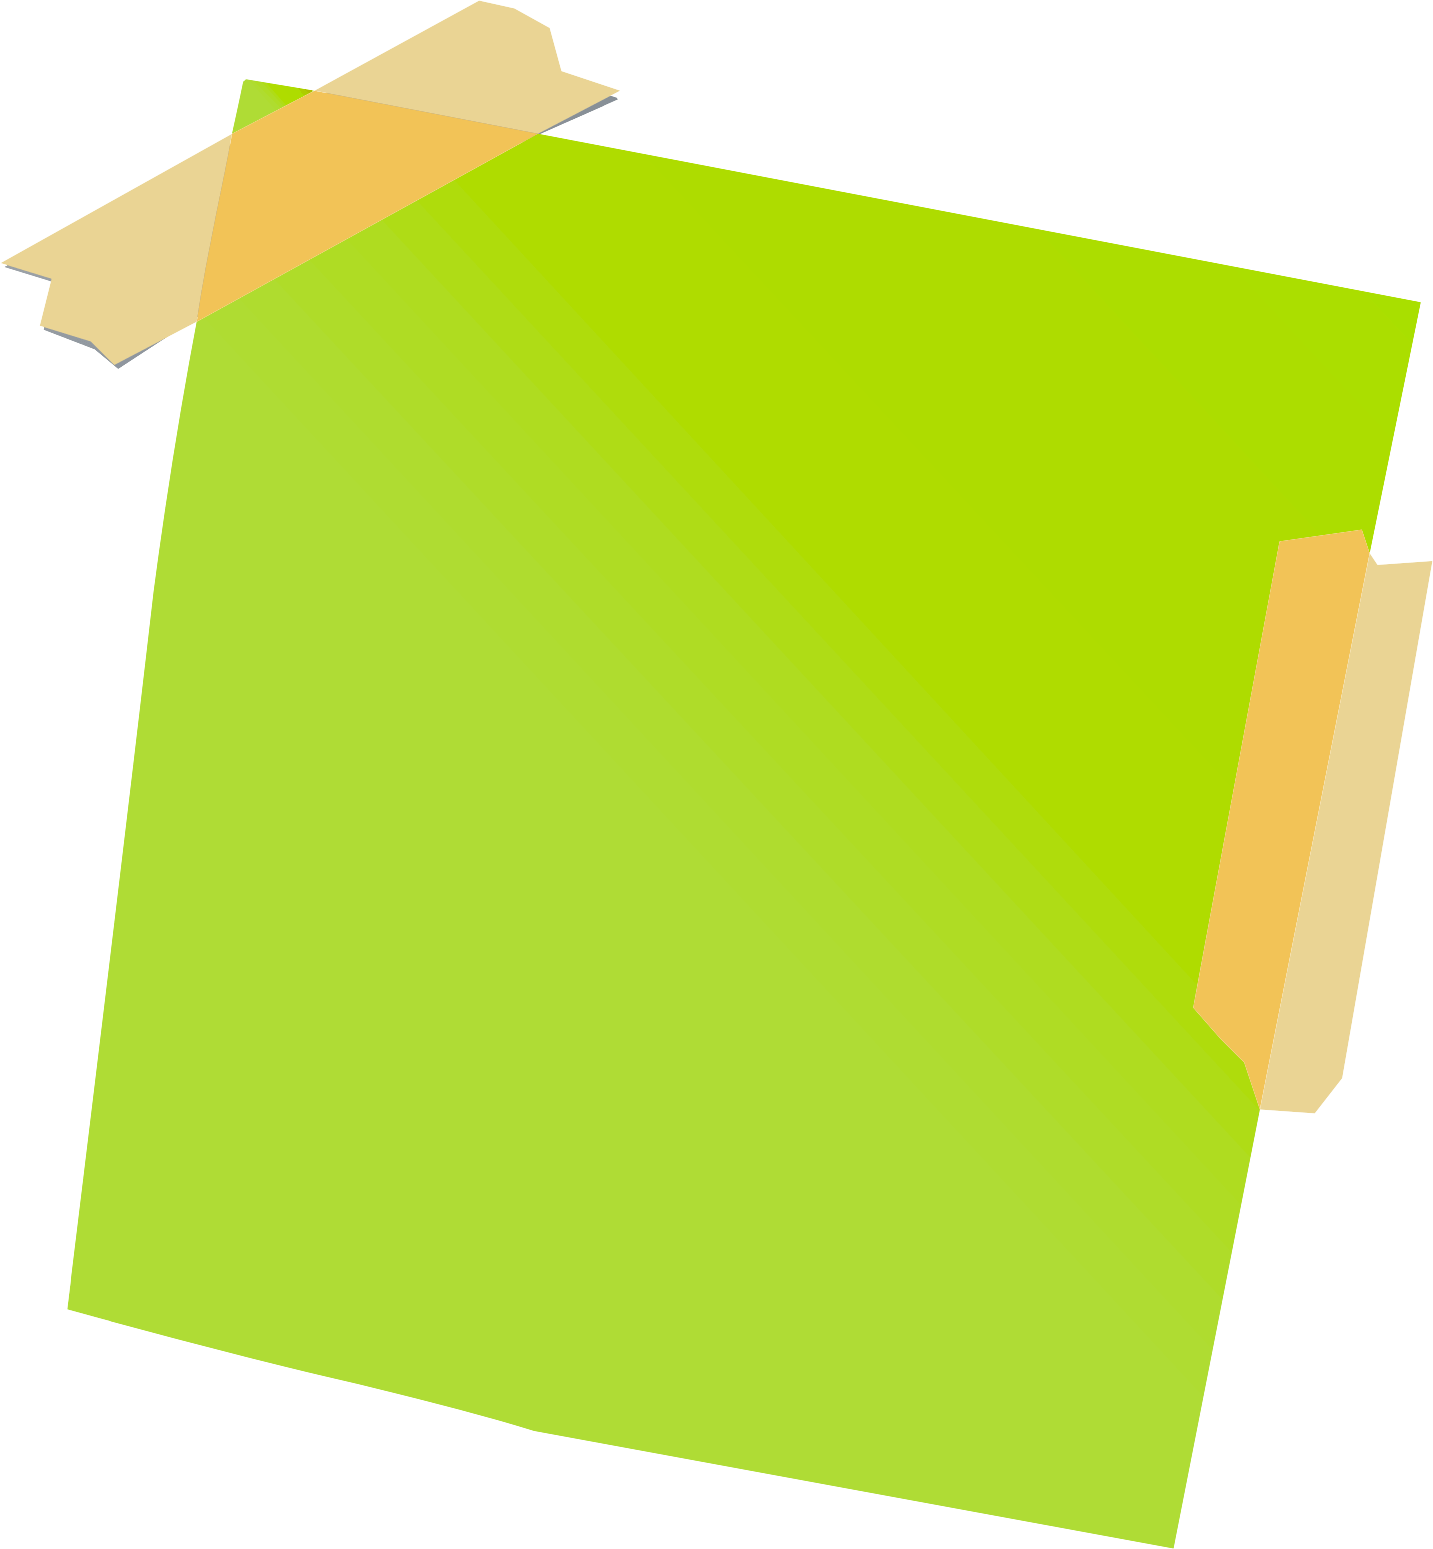 Sticky note png transparent background. Green with tape stickpng